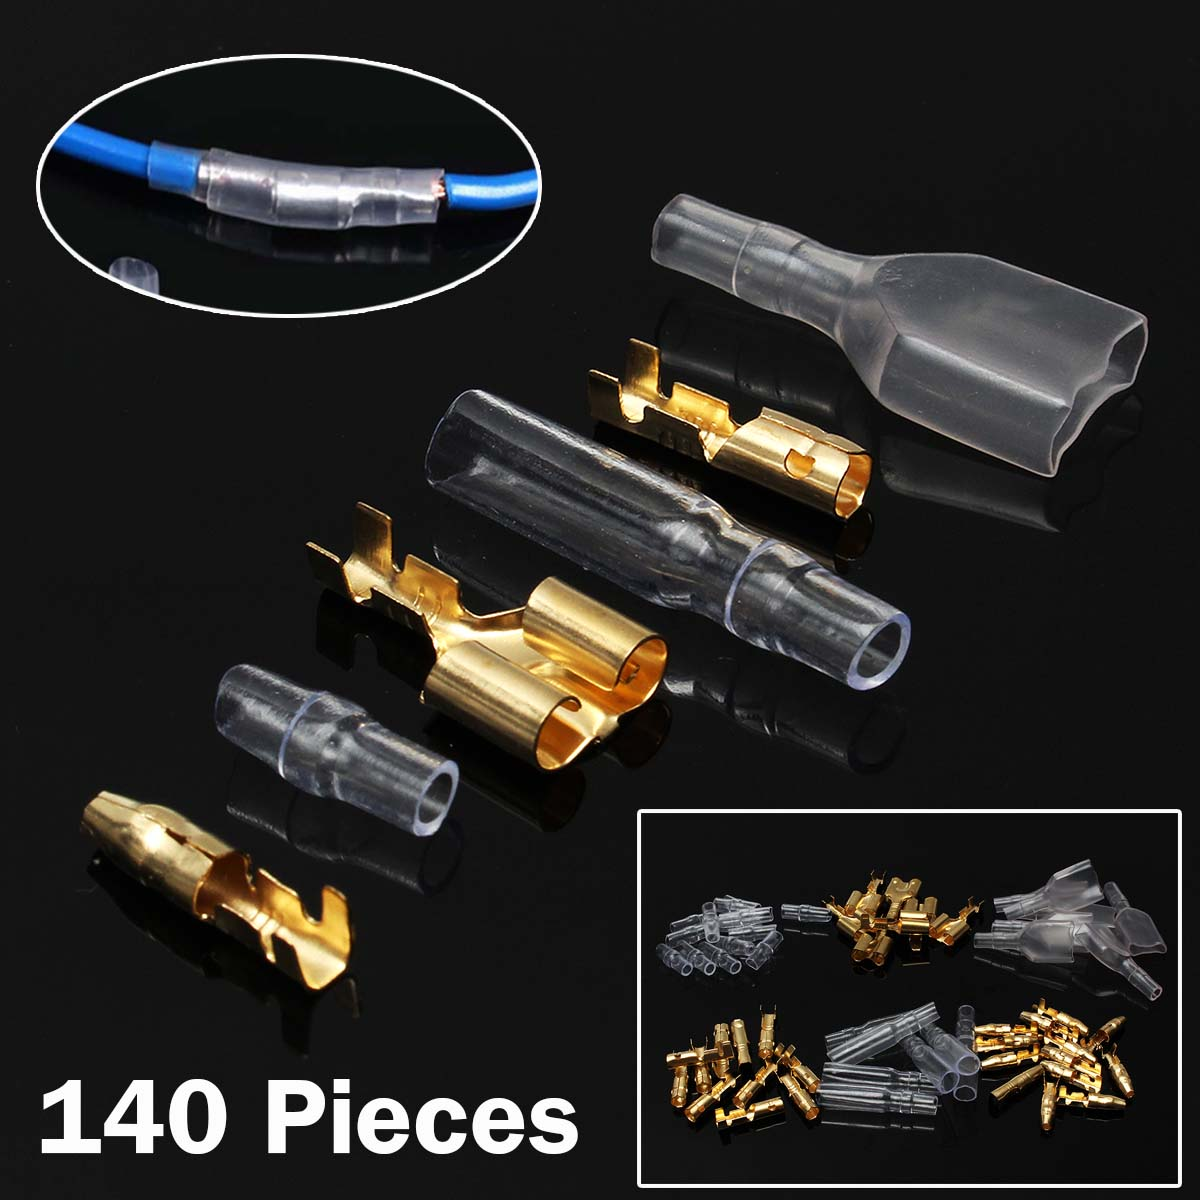 140 Pieces 3.9 mm SWILET Male Female Double Motorcycle Car Bullet Connector Set Terminals Insulation Cover Electrical Equipment 144pcs 2 8mm electrical connector automotive motorcycle brass bullet connectors terminals repair kits with insulation covers